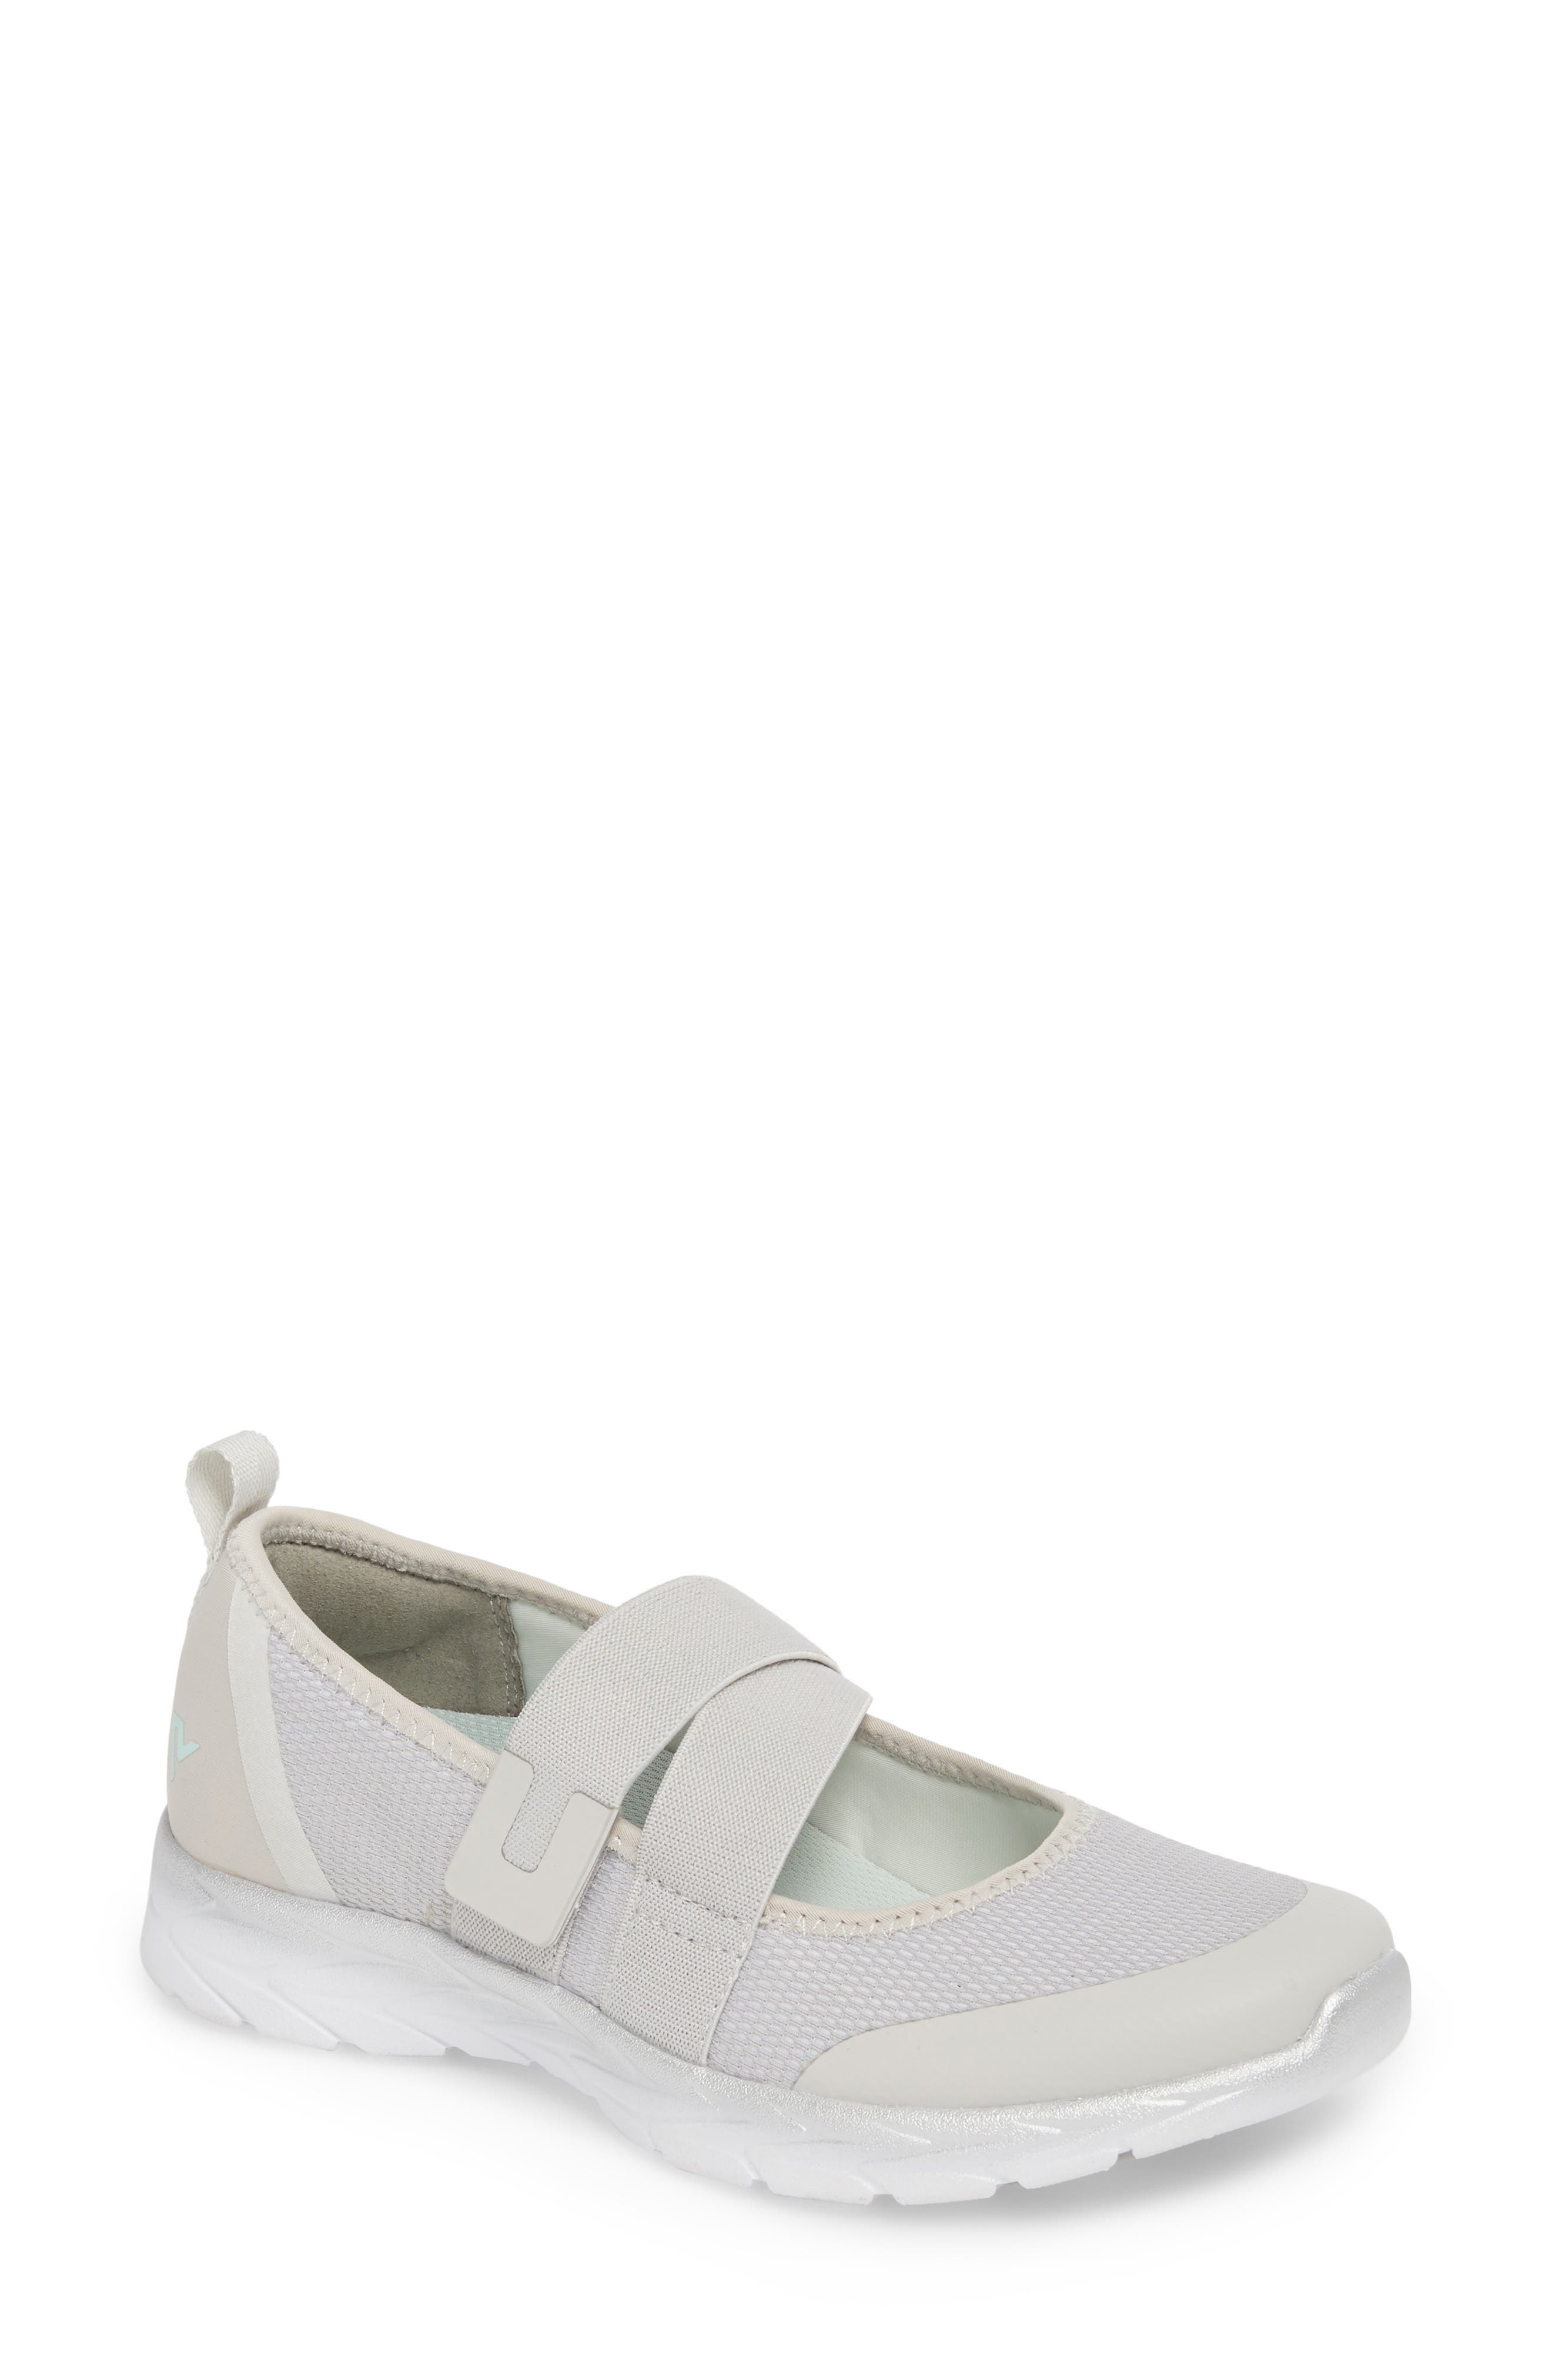 Pace Sneaker,                         Main,                         color, Grey